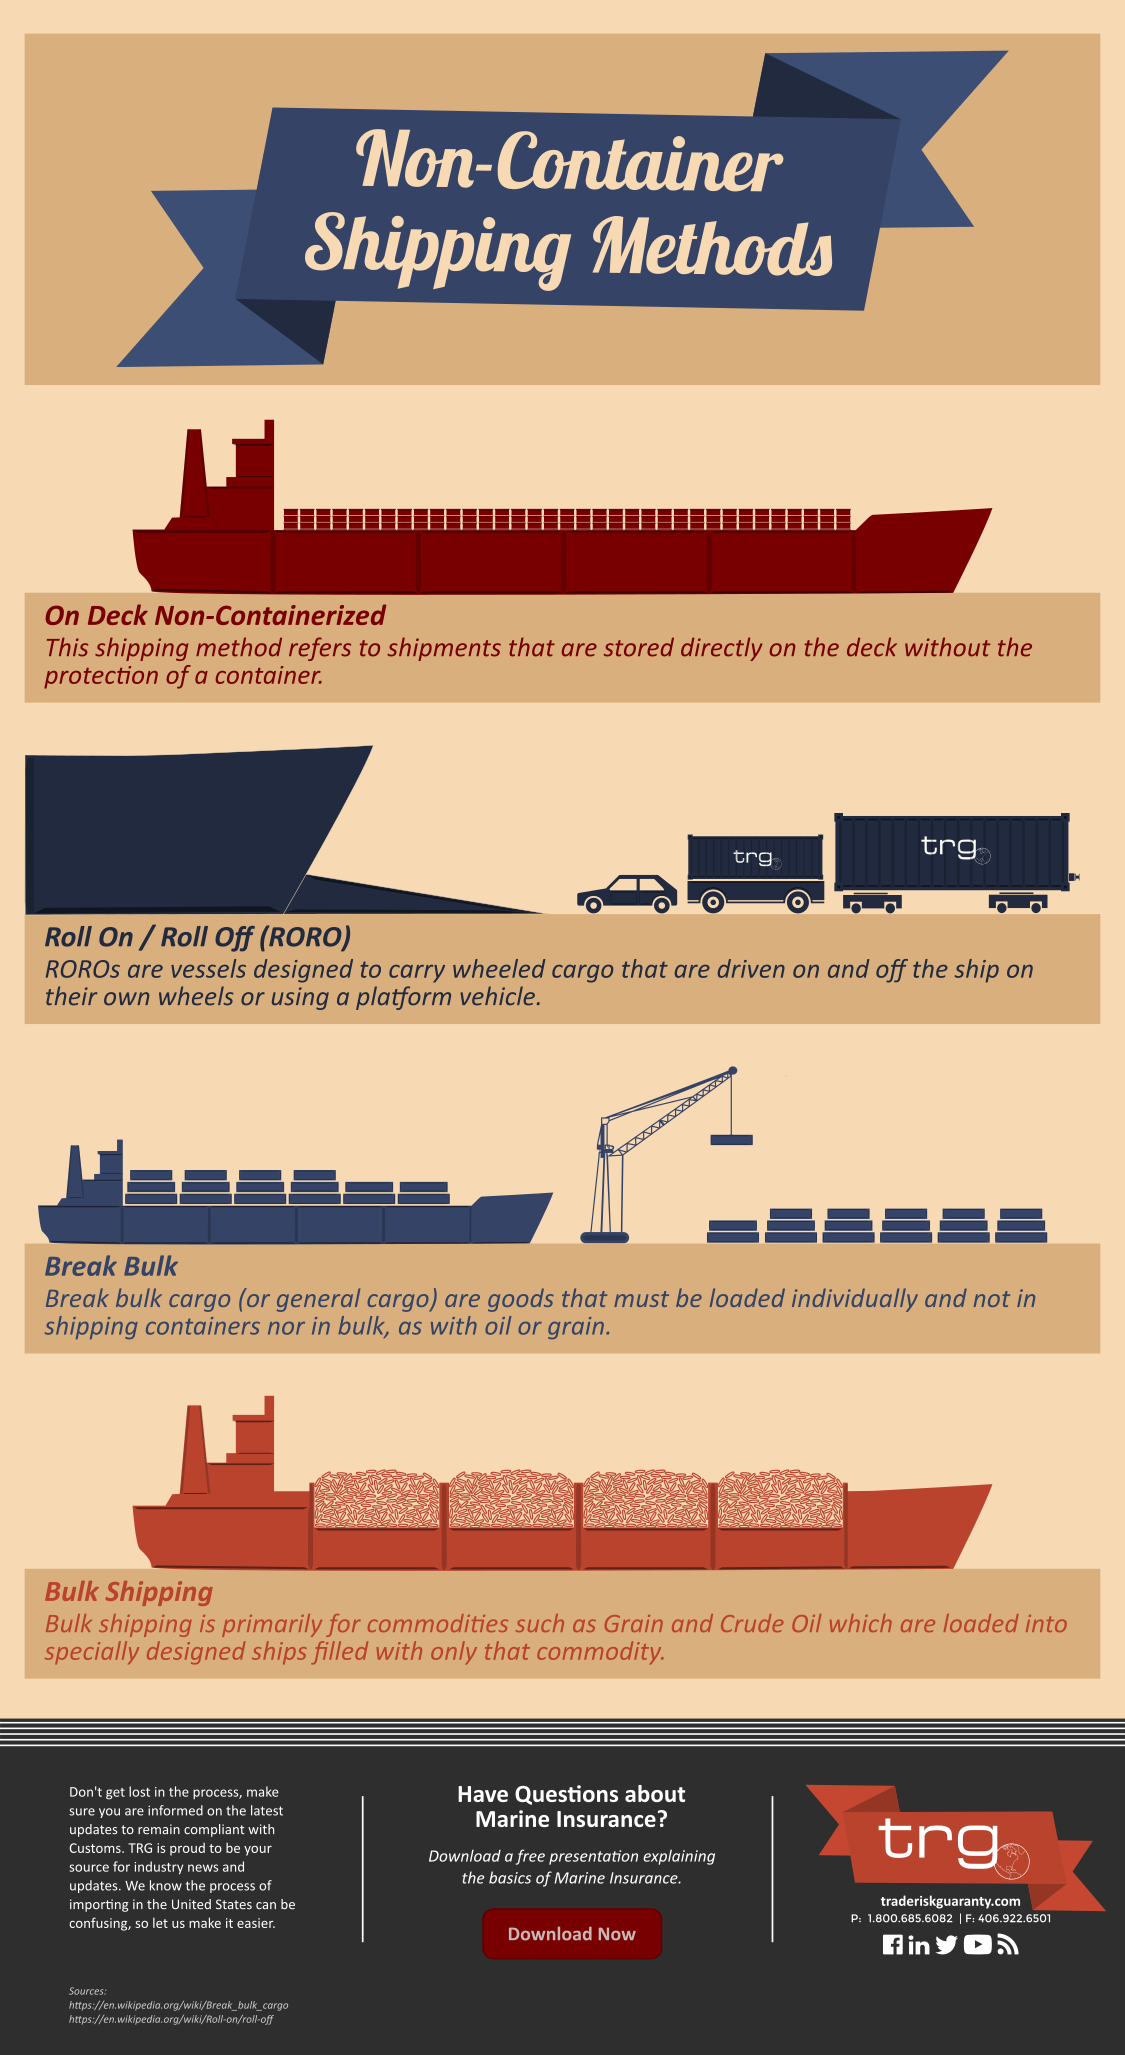 [Infographic] Check Out 4 Shipping Methods with Containers ...